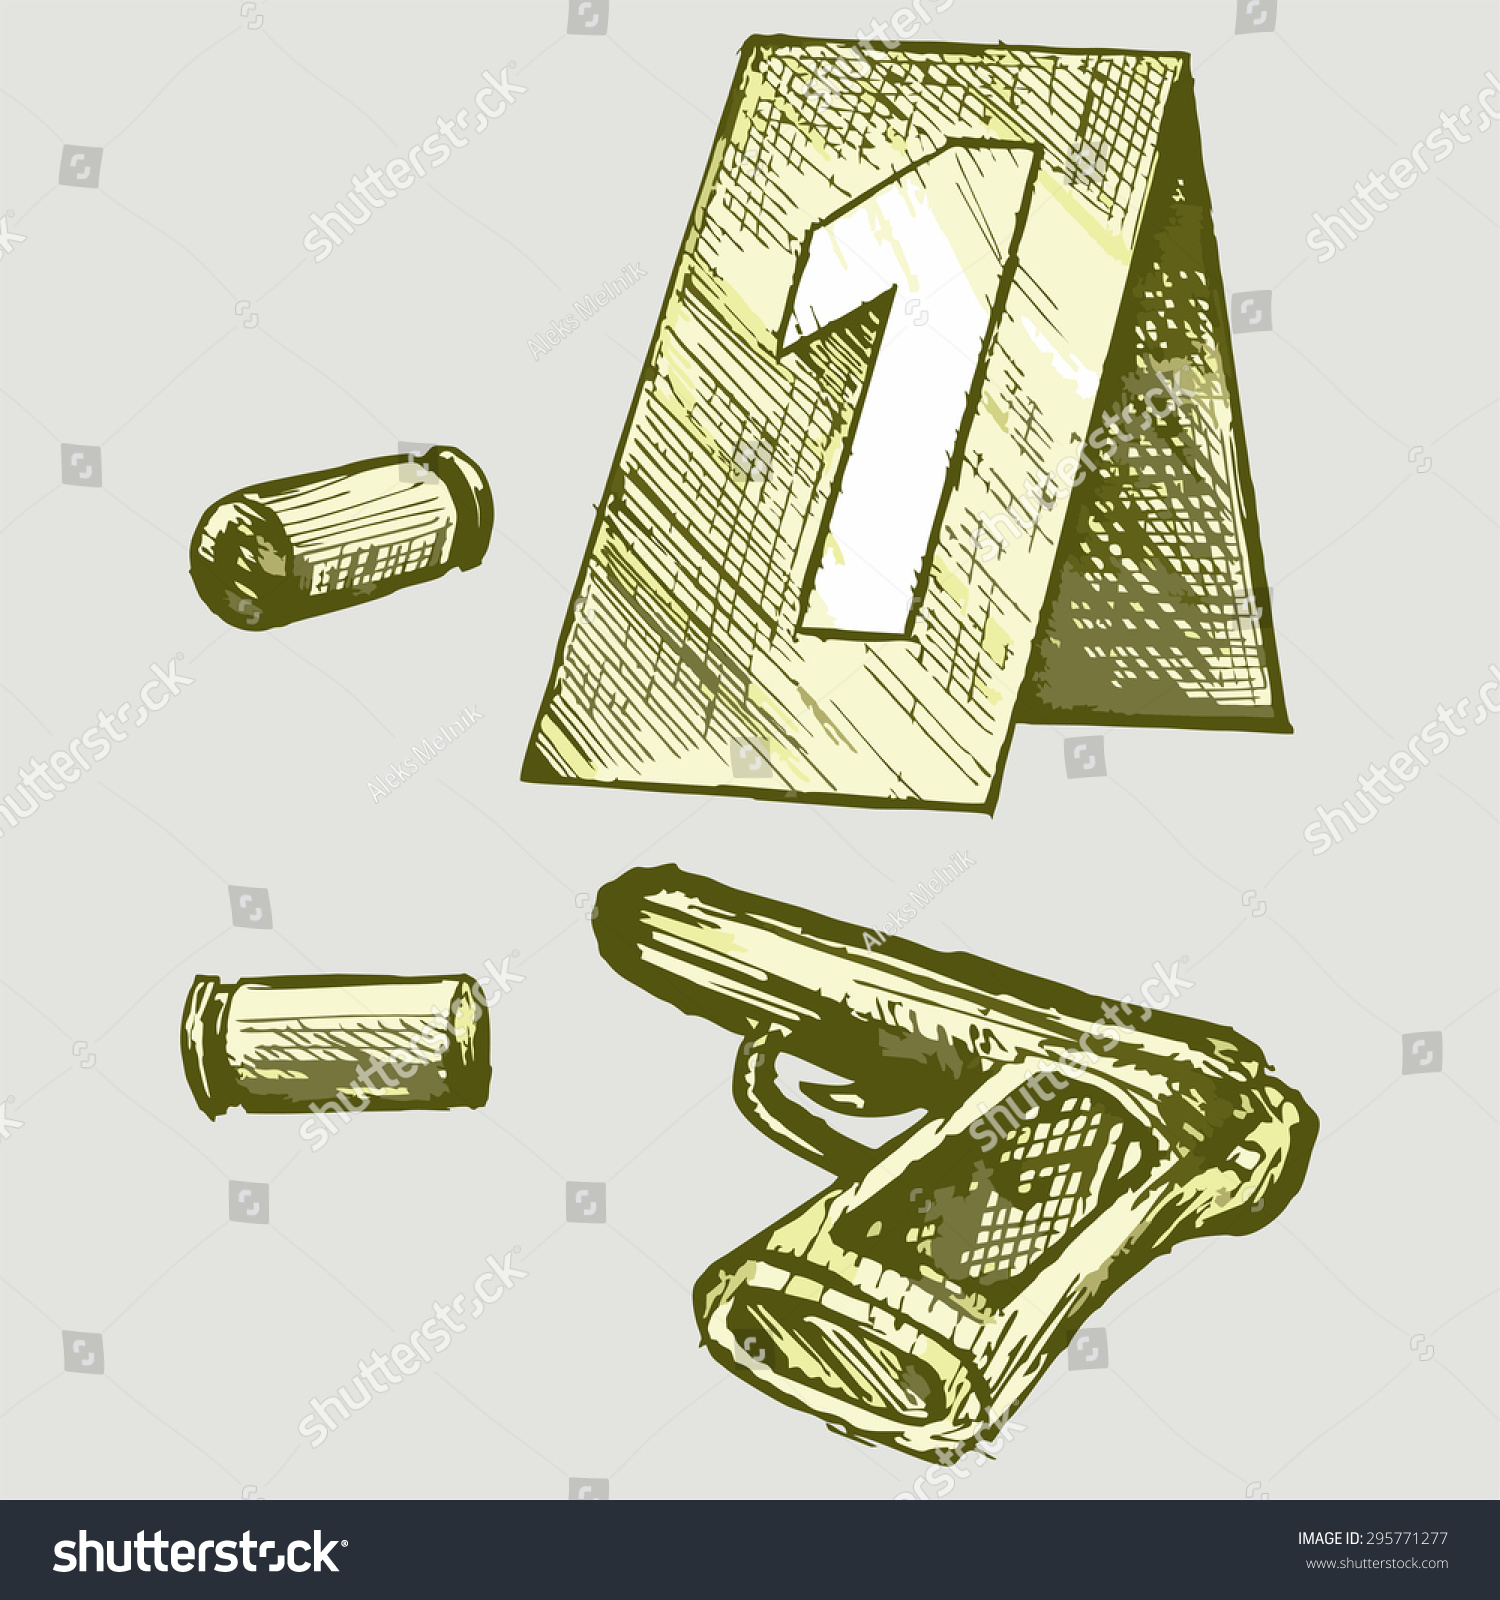 Forensic Science Place Shooting Vector Image Stock Vector Royalty Free 295771277